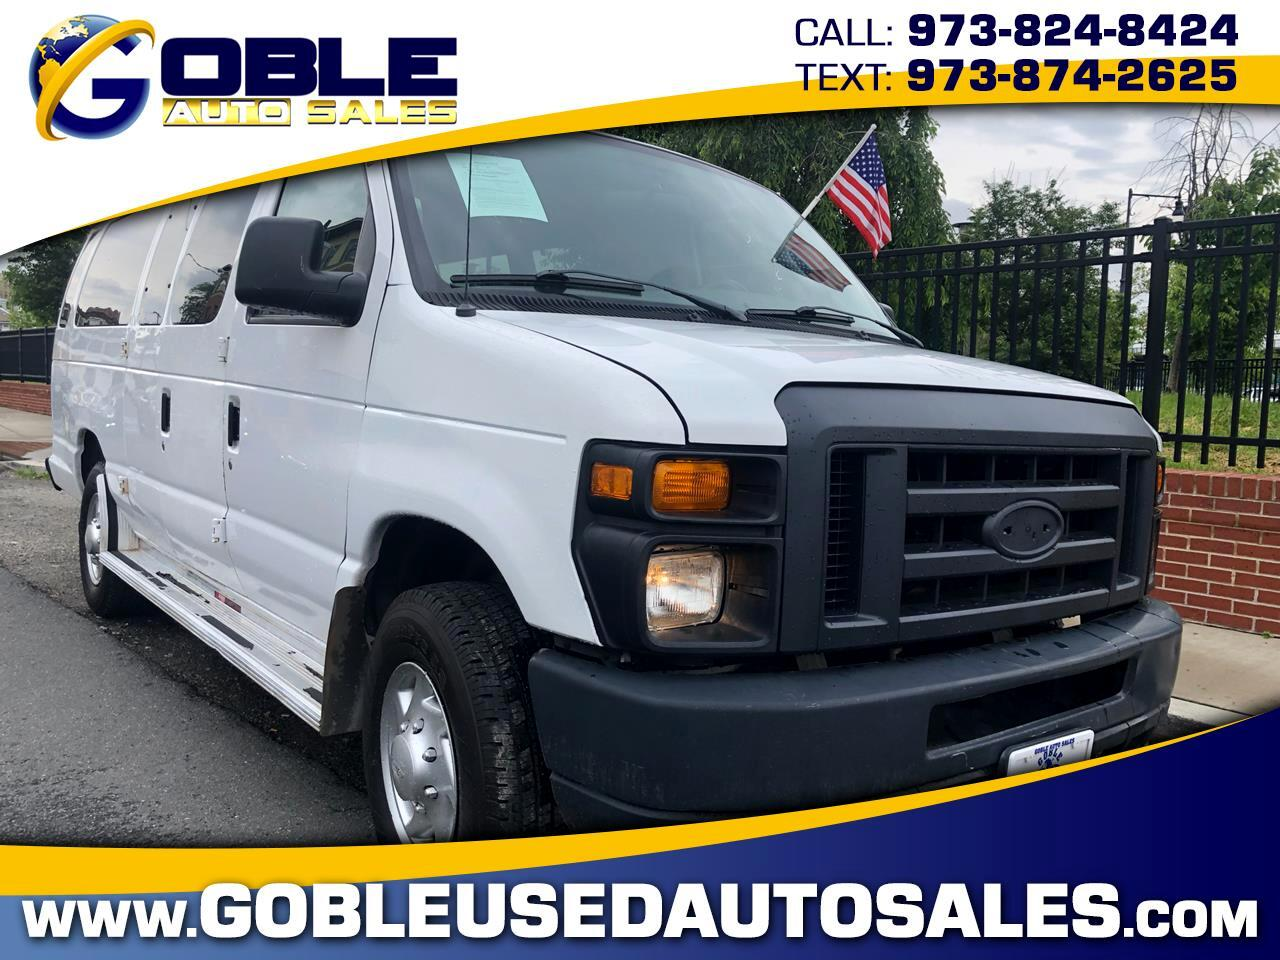 2008 Ford Econoline Wagon E-350 Super Duty Ext XLT